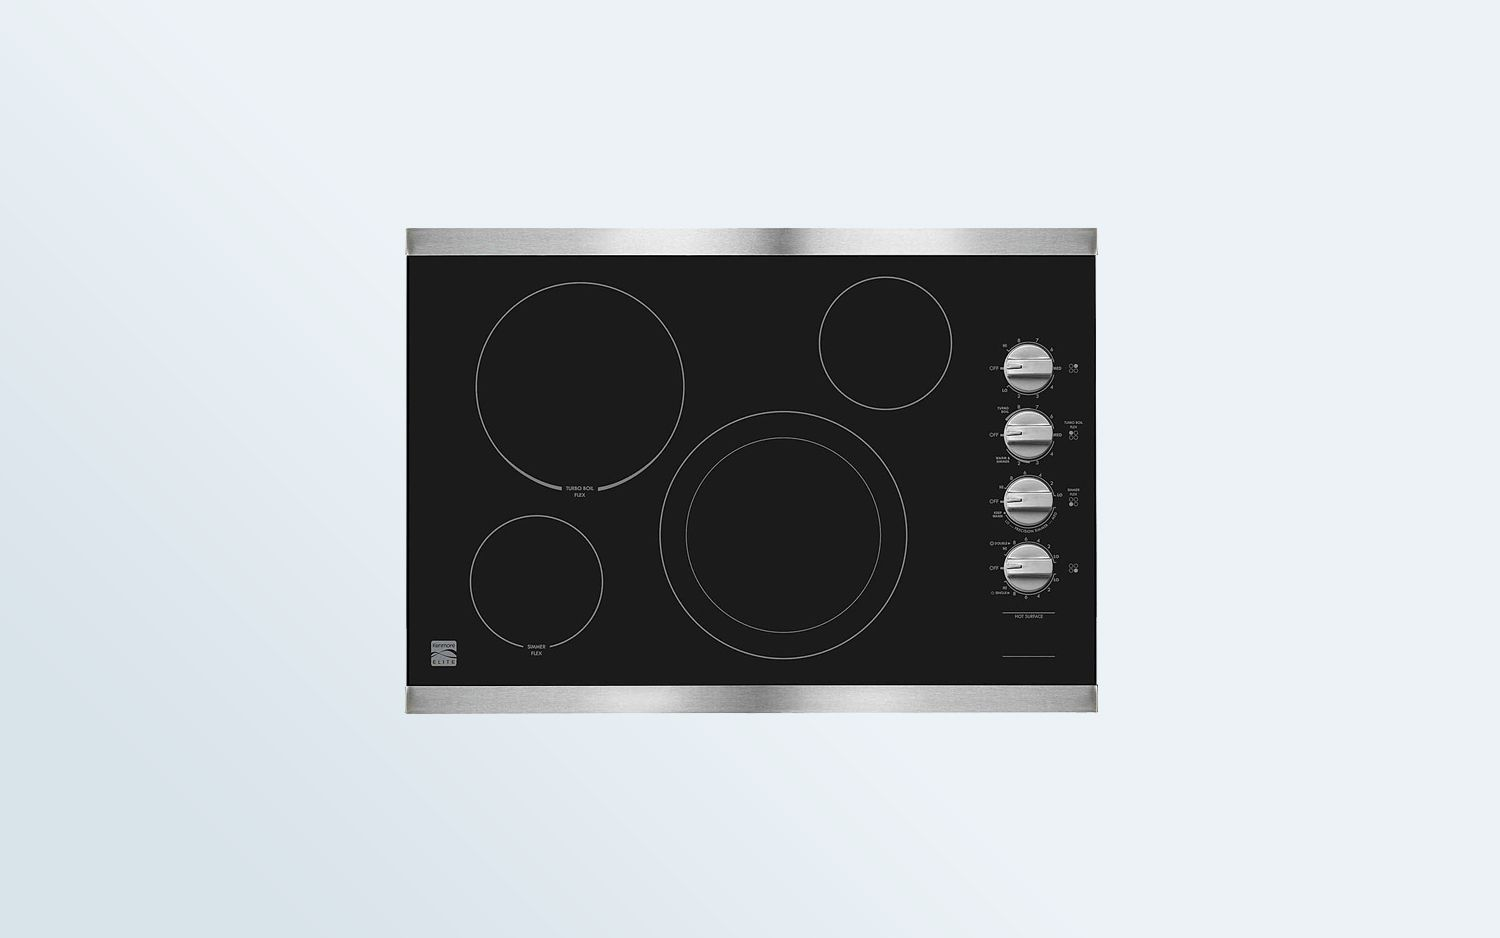 Best Electric Cooktops 2020 30 And 36 Inch Stove Tops With Downdraft Electric Cooktop Cooktop Electric Stove